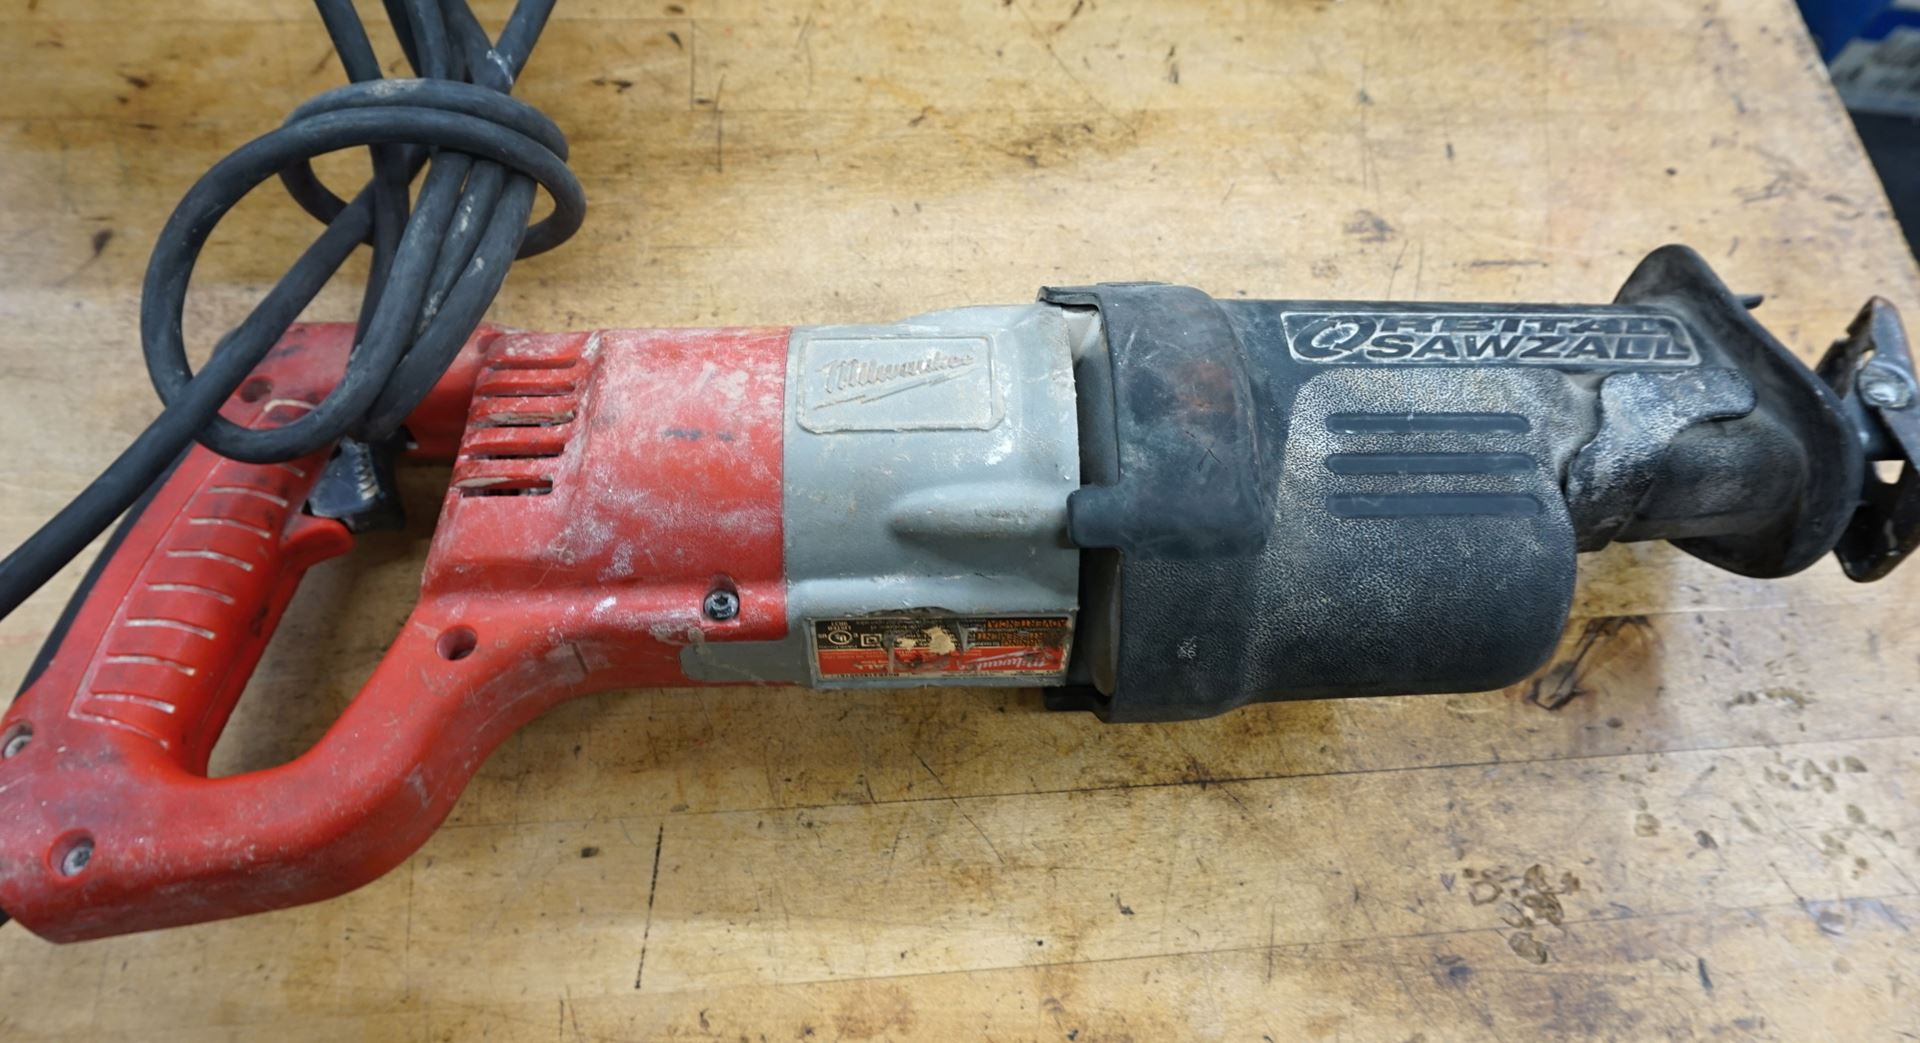 Milwaukee 6520 21 >> Cash Usa Pawnshop Milwaukee Sawzall 6520 21